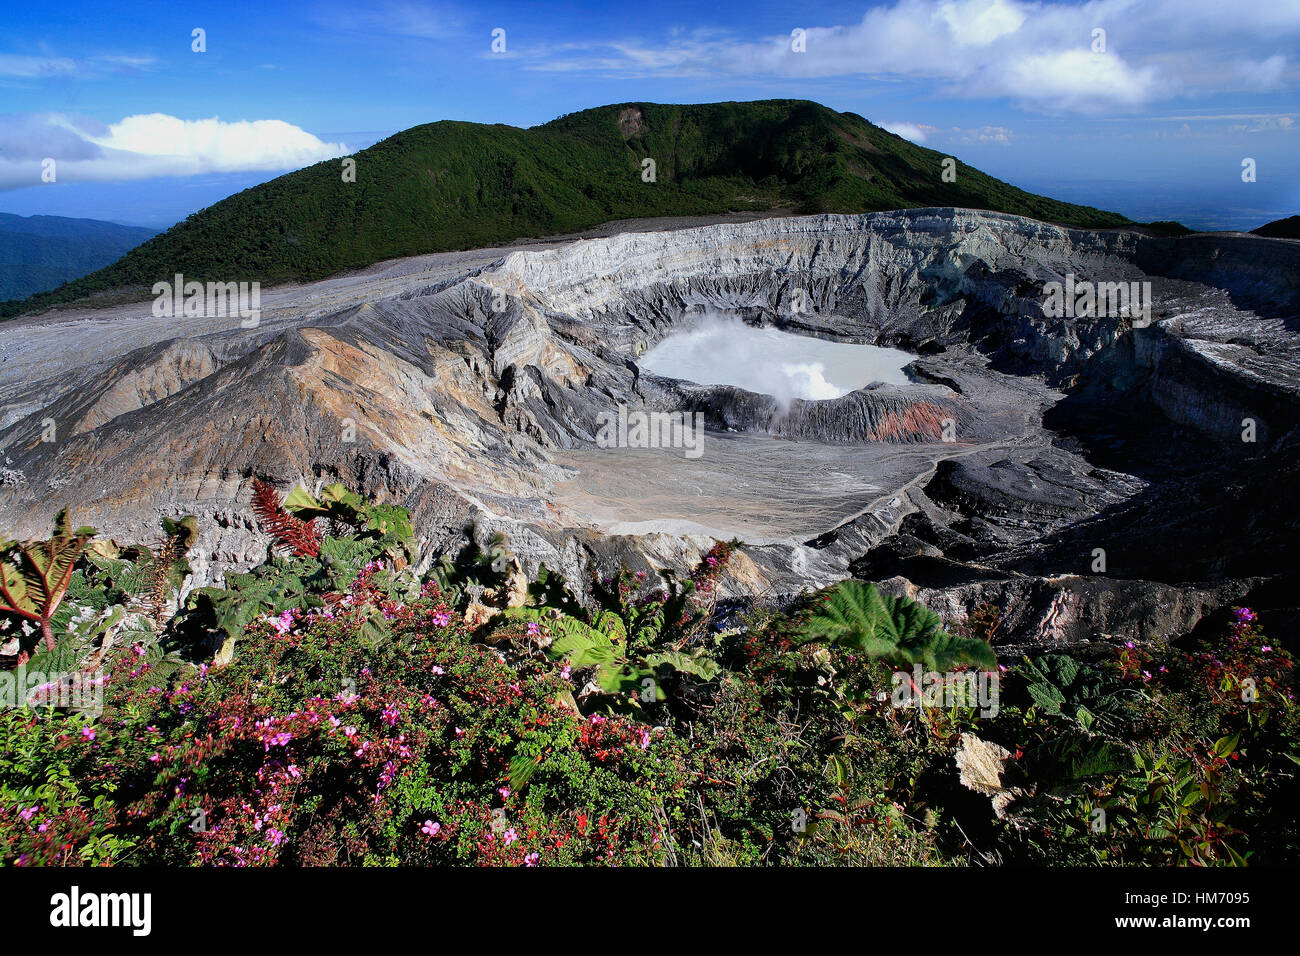 Crater of Poás Volcano, Alajuela, Costa Rica - Stock Image